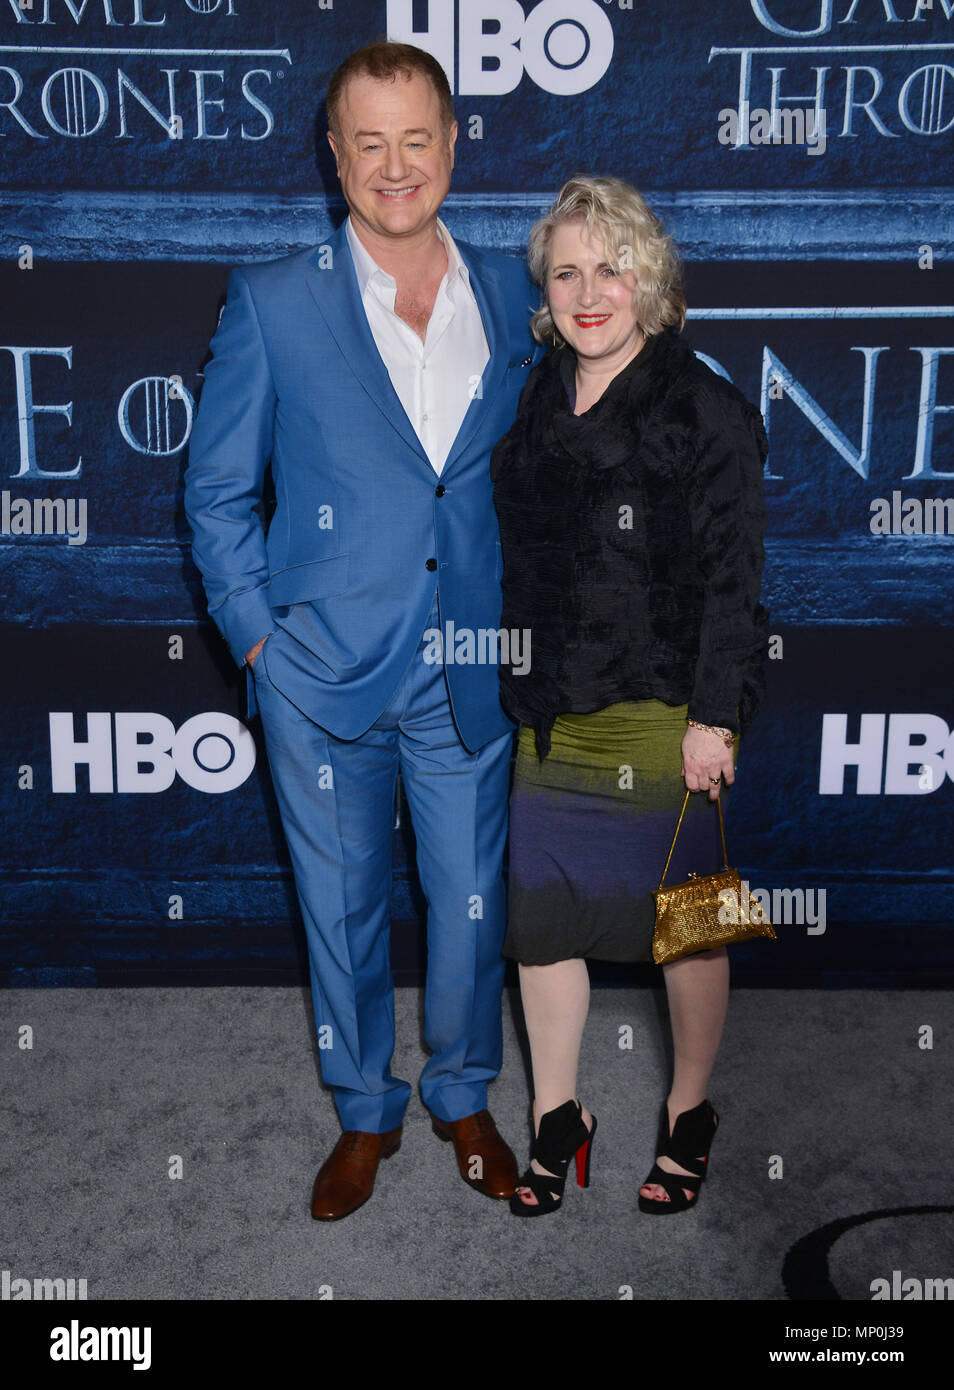 Owen Teale 330 arriving at the Game of Thrones at the TCL Chinese Theatre in Los Angeles. April 10, 2016.Owen Teale 330 ------------- Red Carpet Event, Vertical, USA, Film Industry, Celebrities,  Photography, Bestof, Arts Culture and Entertainment, Topix Celebrities fashion /  Vertical, Best of, Event in Hollywood Life - California,  Red Carpet and backstage, USA, Film Industry, Celebrities,  movie celebrities, TV celebrities, Music celebrities, Photography, Bestof, Arts Culture and Entertainment,  Topix, vertical,  family from from the year , 2016, inquiry tsuni@Gamma-USA.com Husband and wife - Stock Image